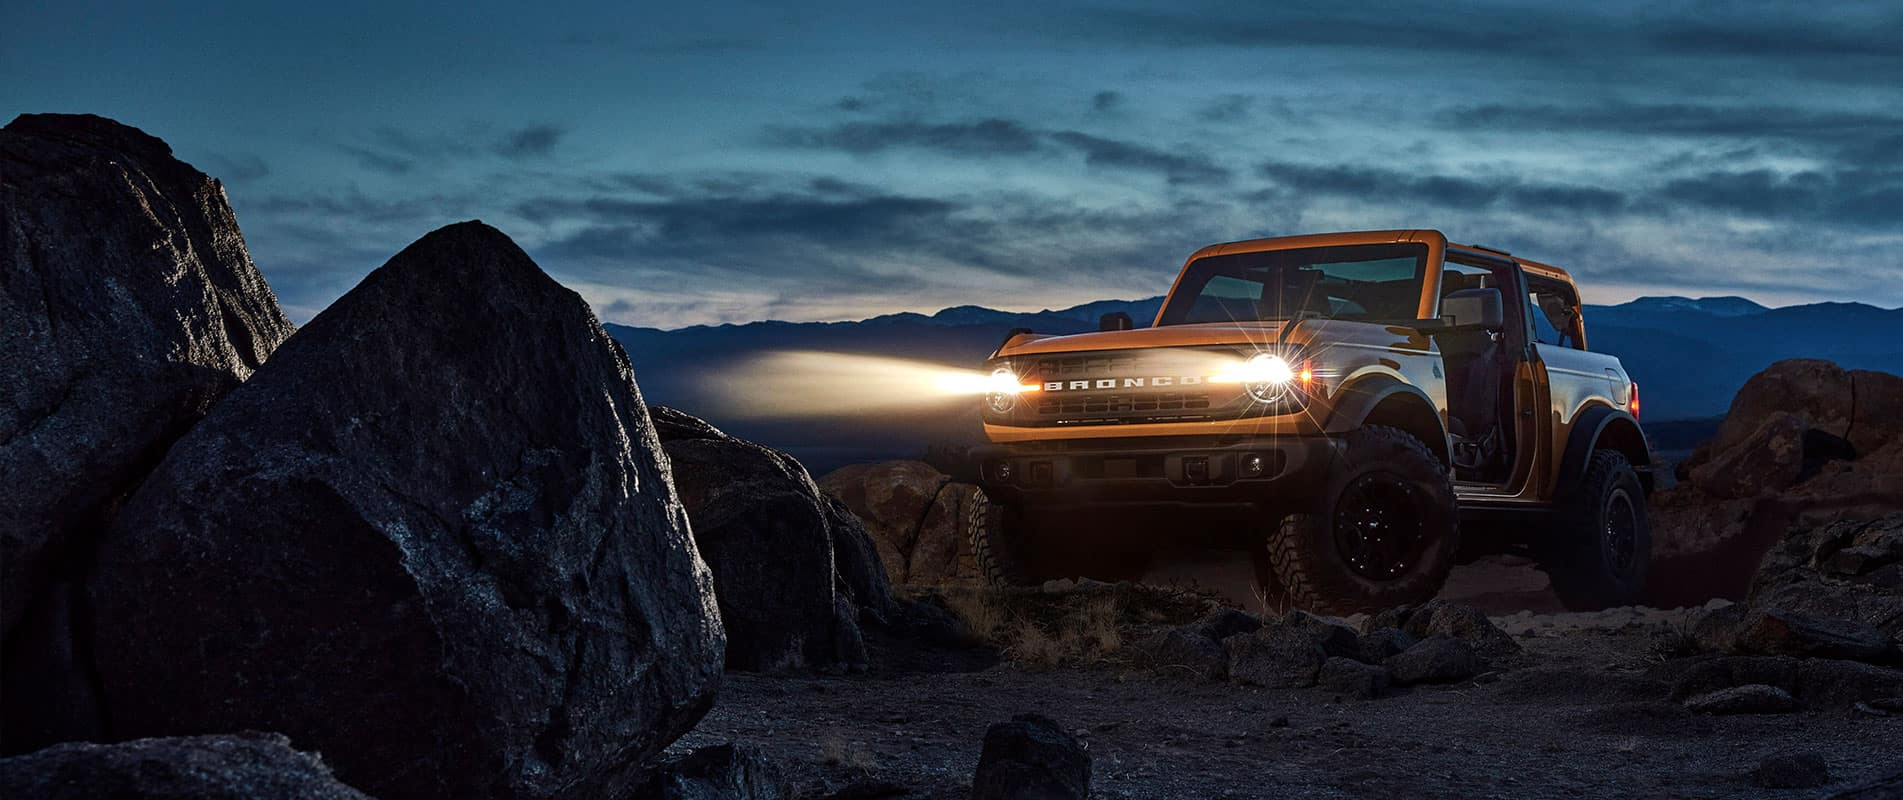 Bronco parked at night on rocky terrain